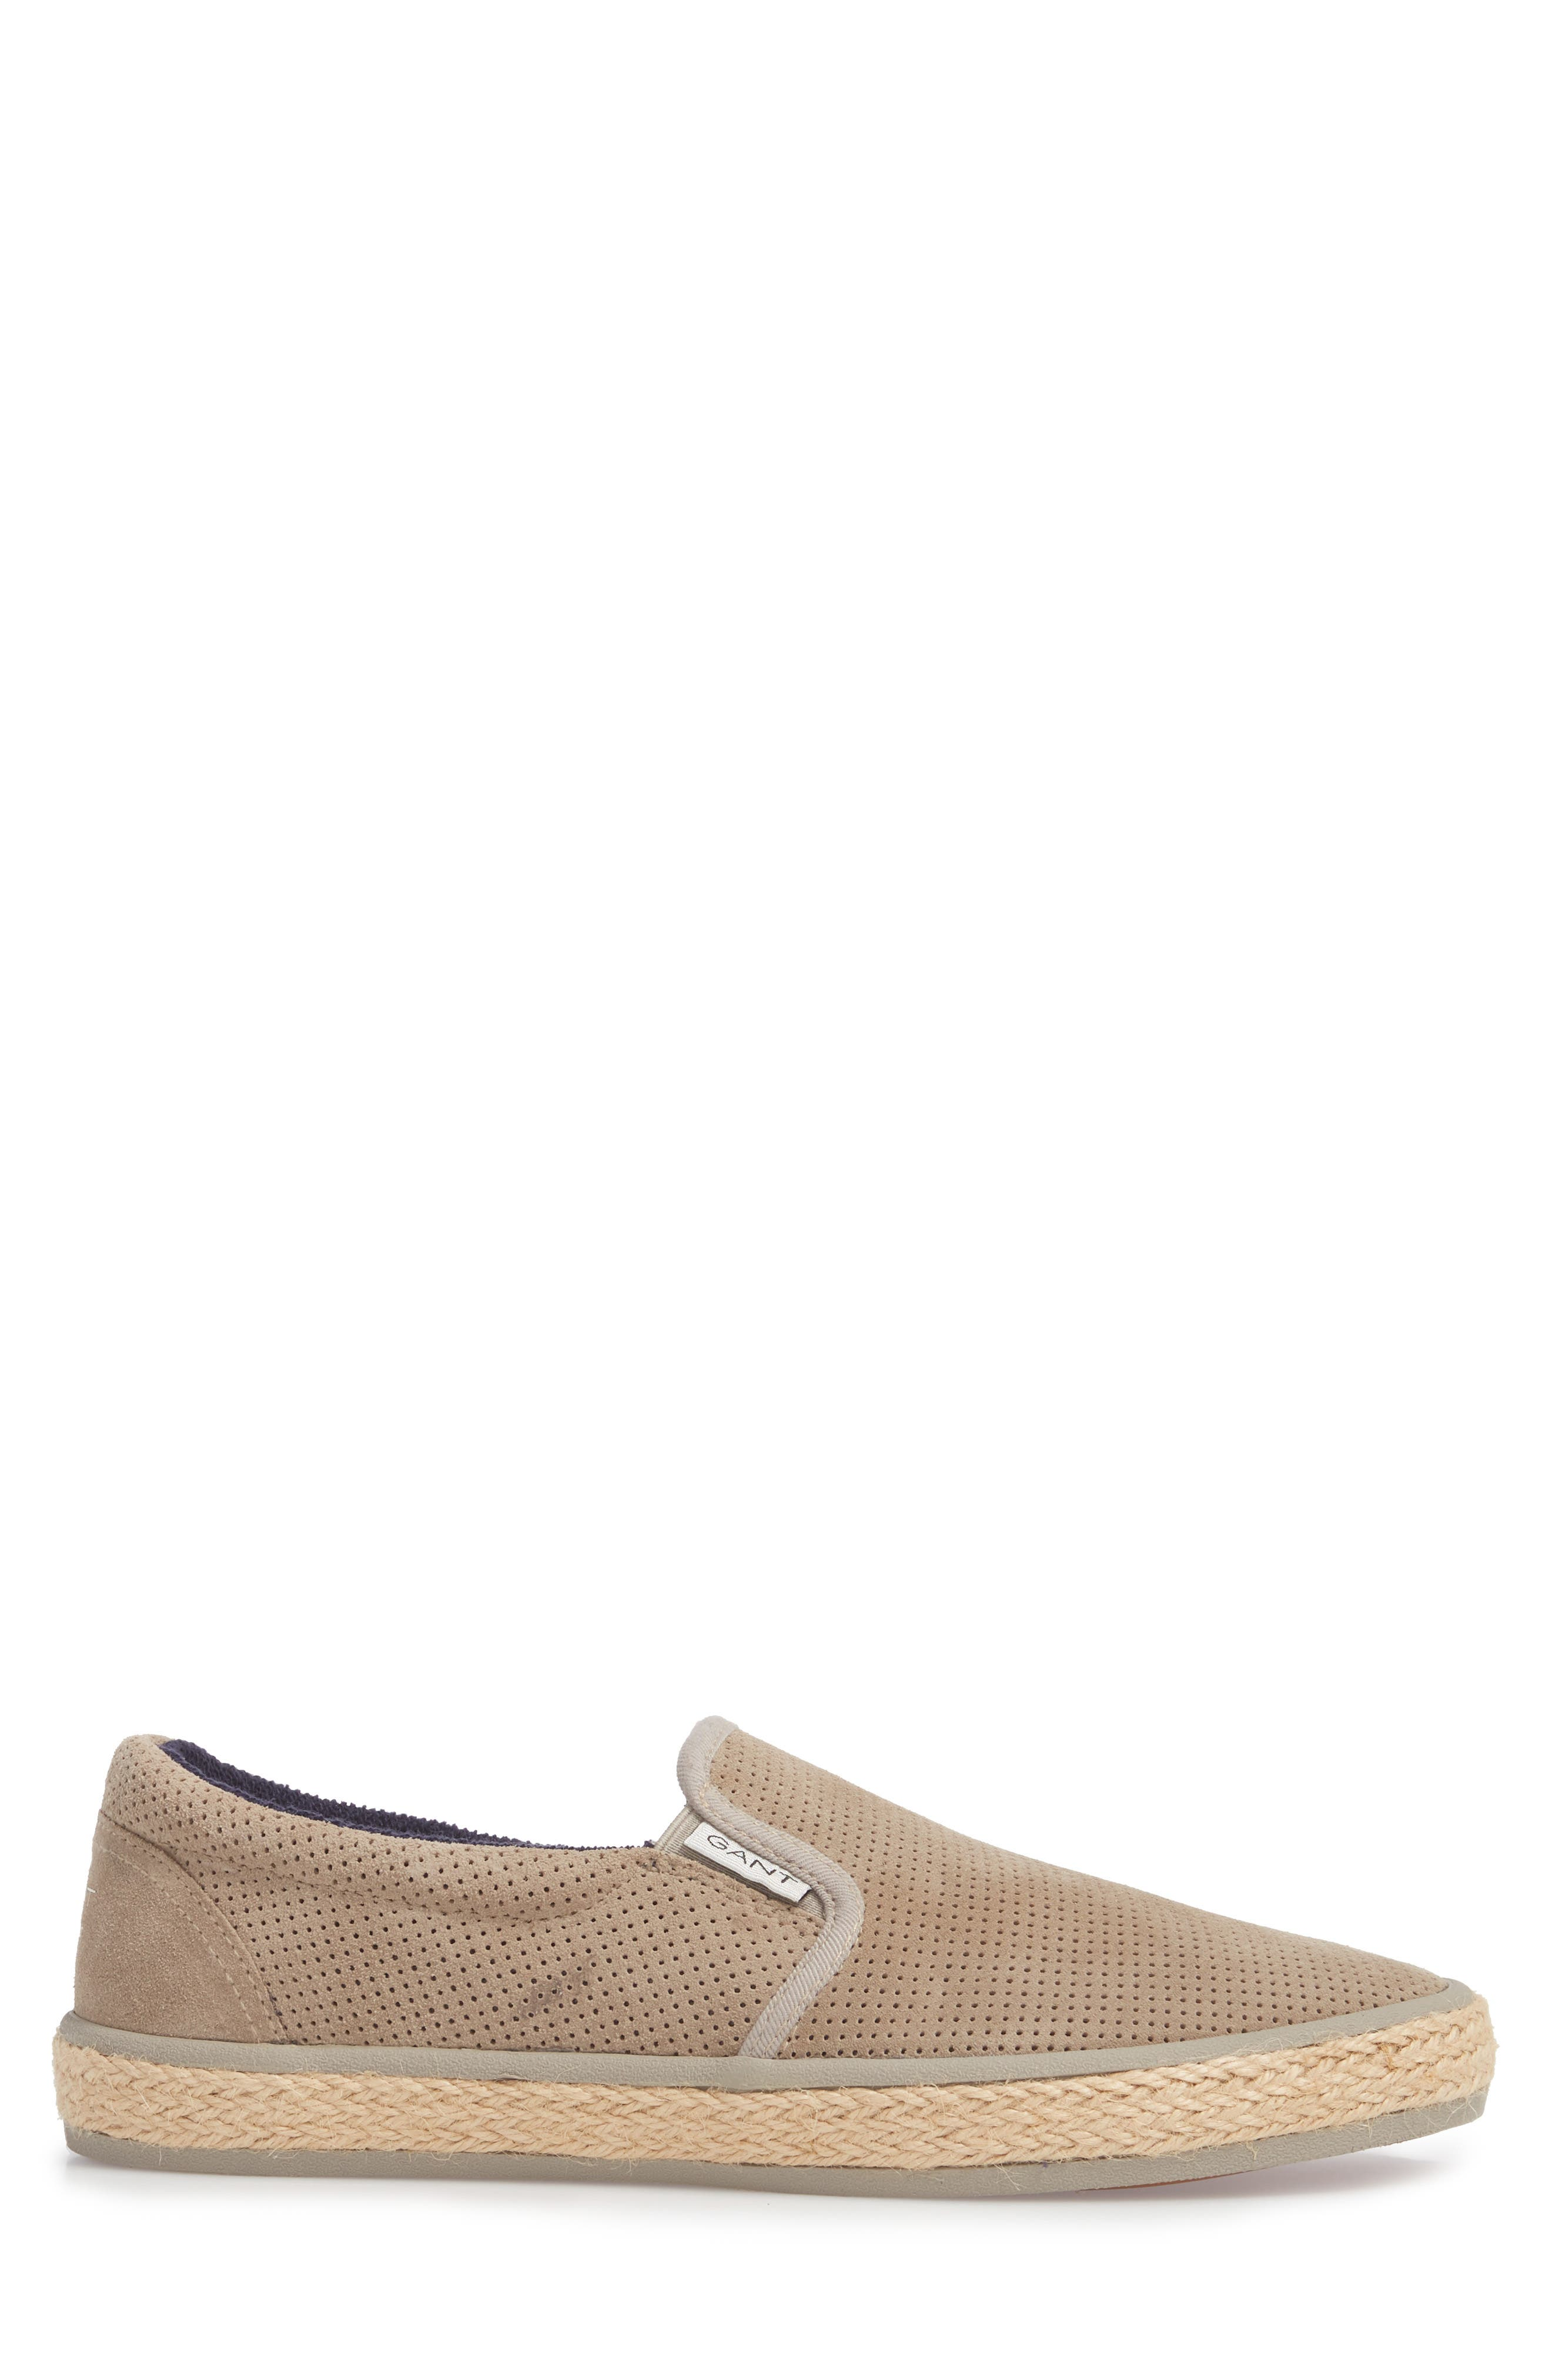 Master Perforated Slip-On Sneaker,                             Alternate thumbnail 3, color,                             Cashew Brown